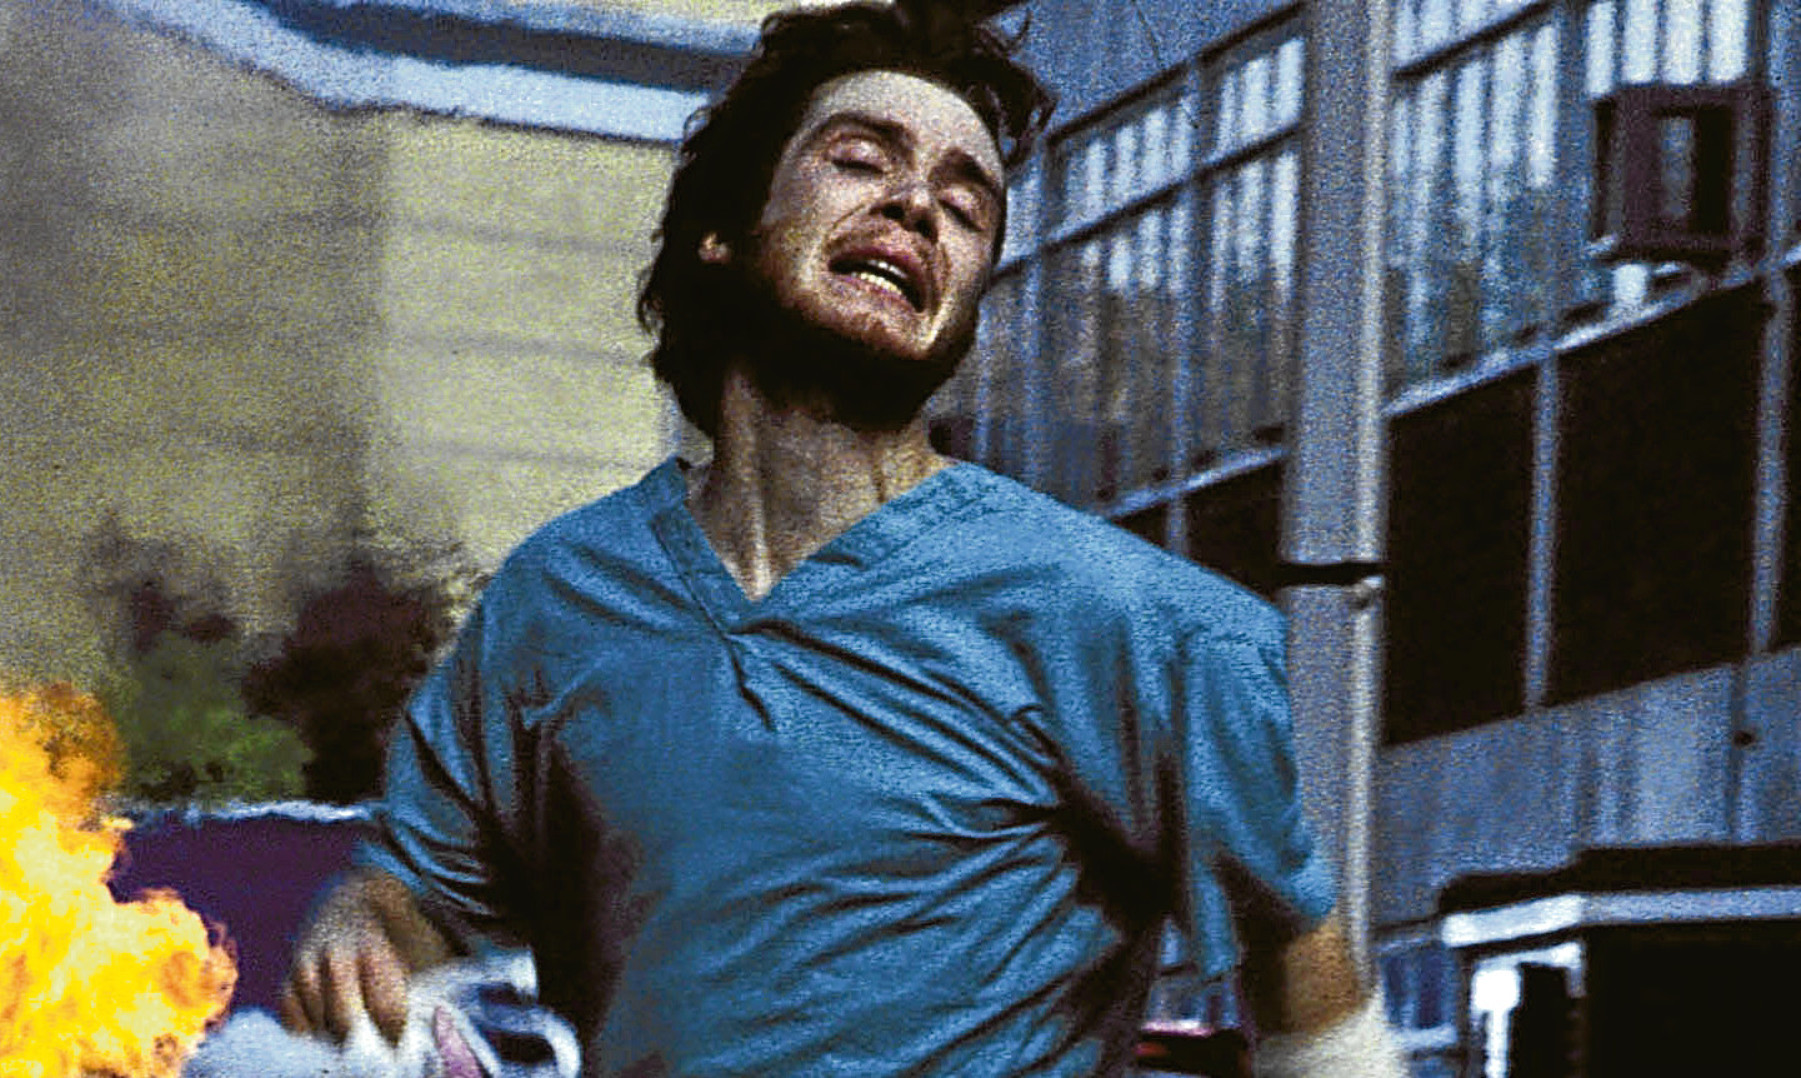 Cillian Murphy in 28 Days Later, which scared Mike so much he felt physically ill.